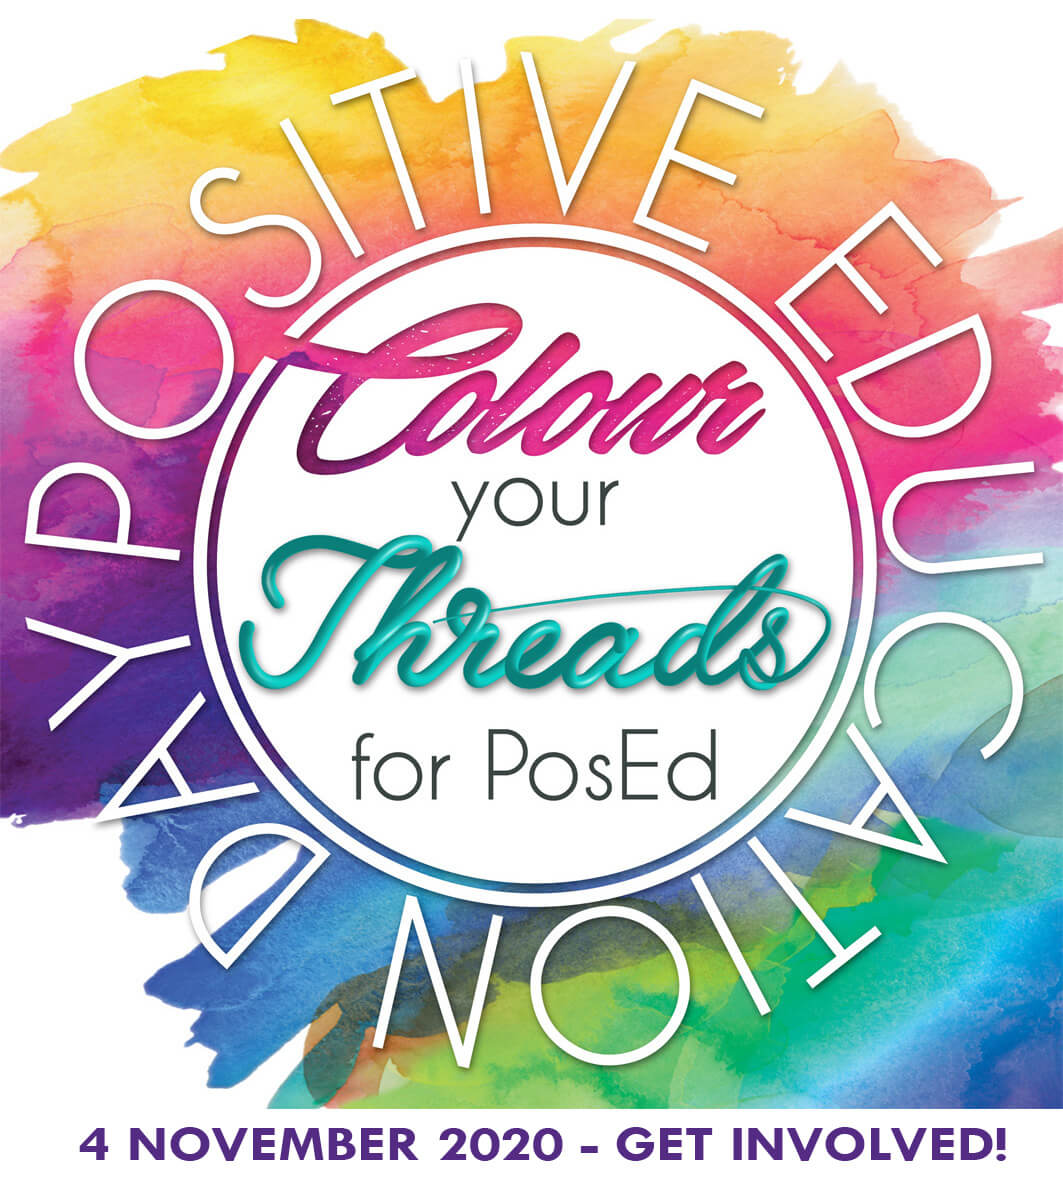 Colour your threads for PosEd logo 2020 date